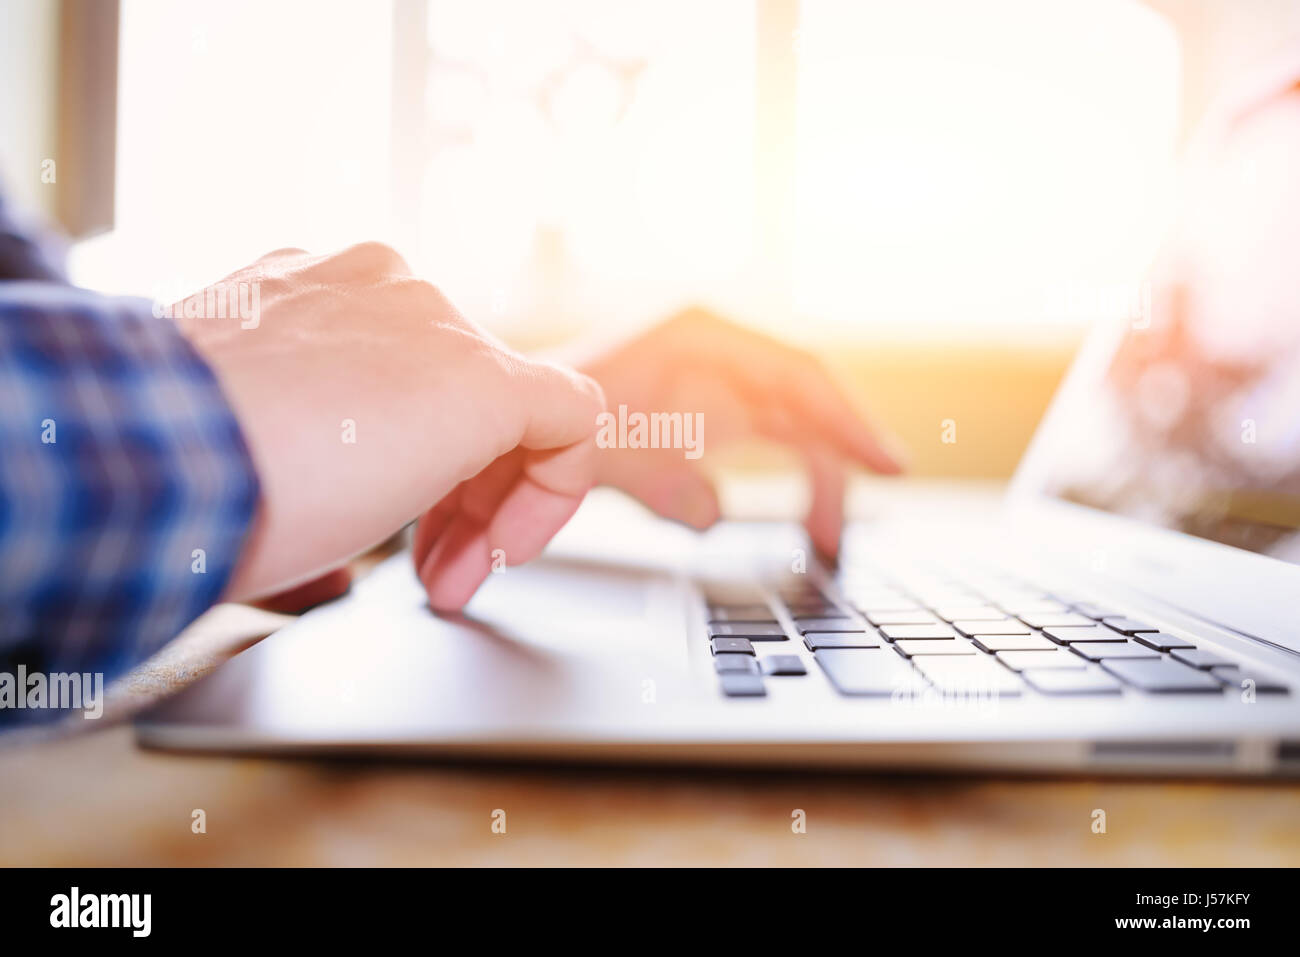 Close-up of a worker using a laptop computer. - Stock Image